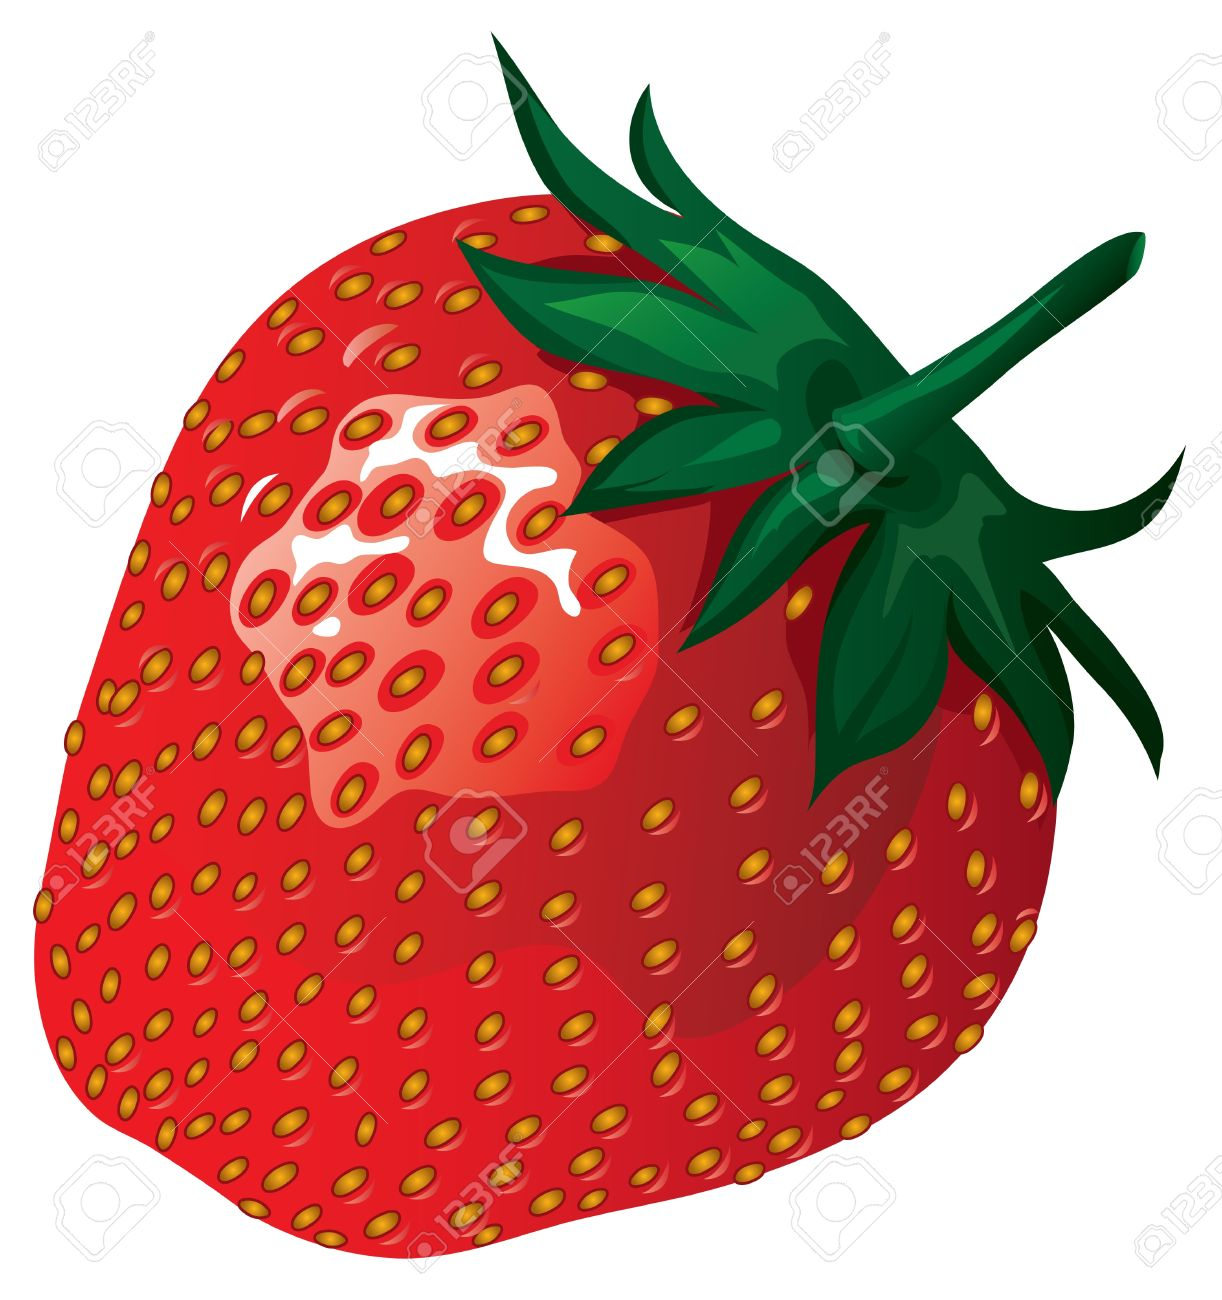 strawberry illustration royalty free cliparts vectors and stock illustration image 10609653 strawberry illustration